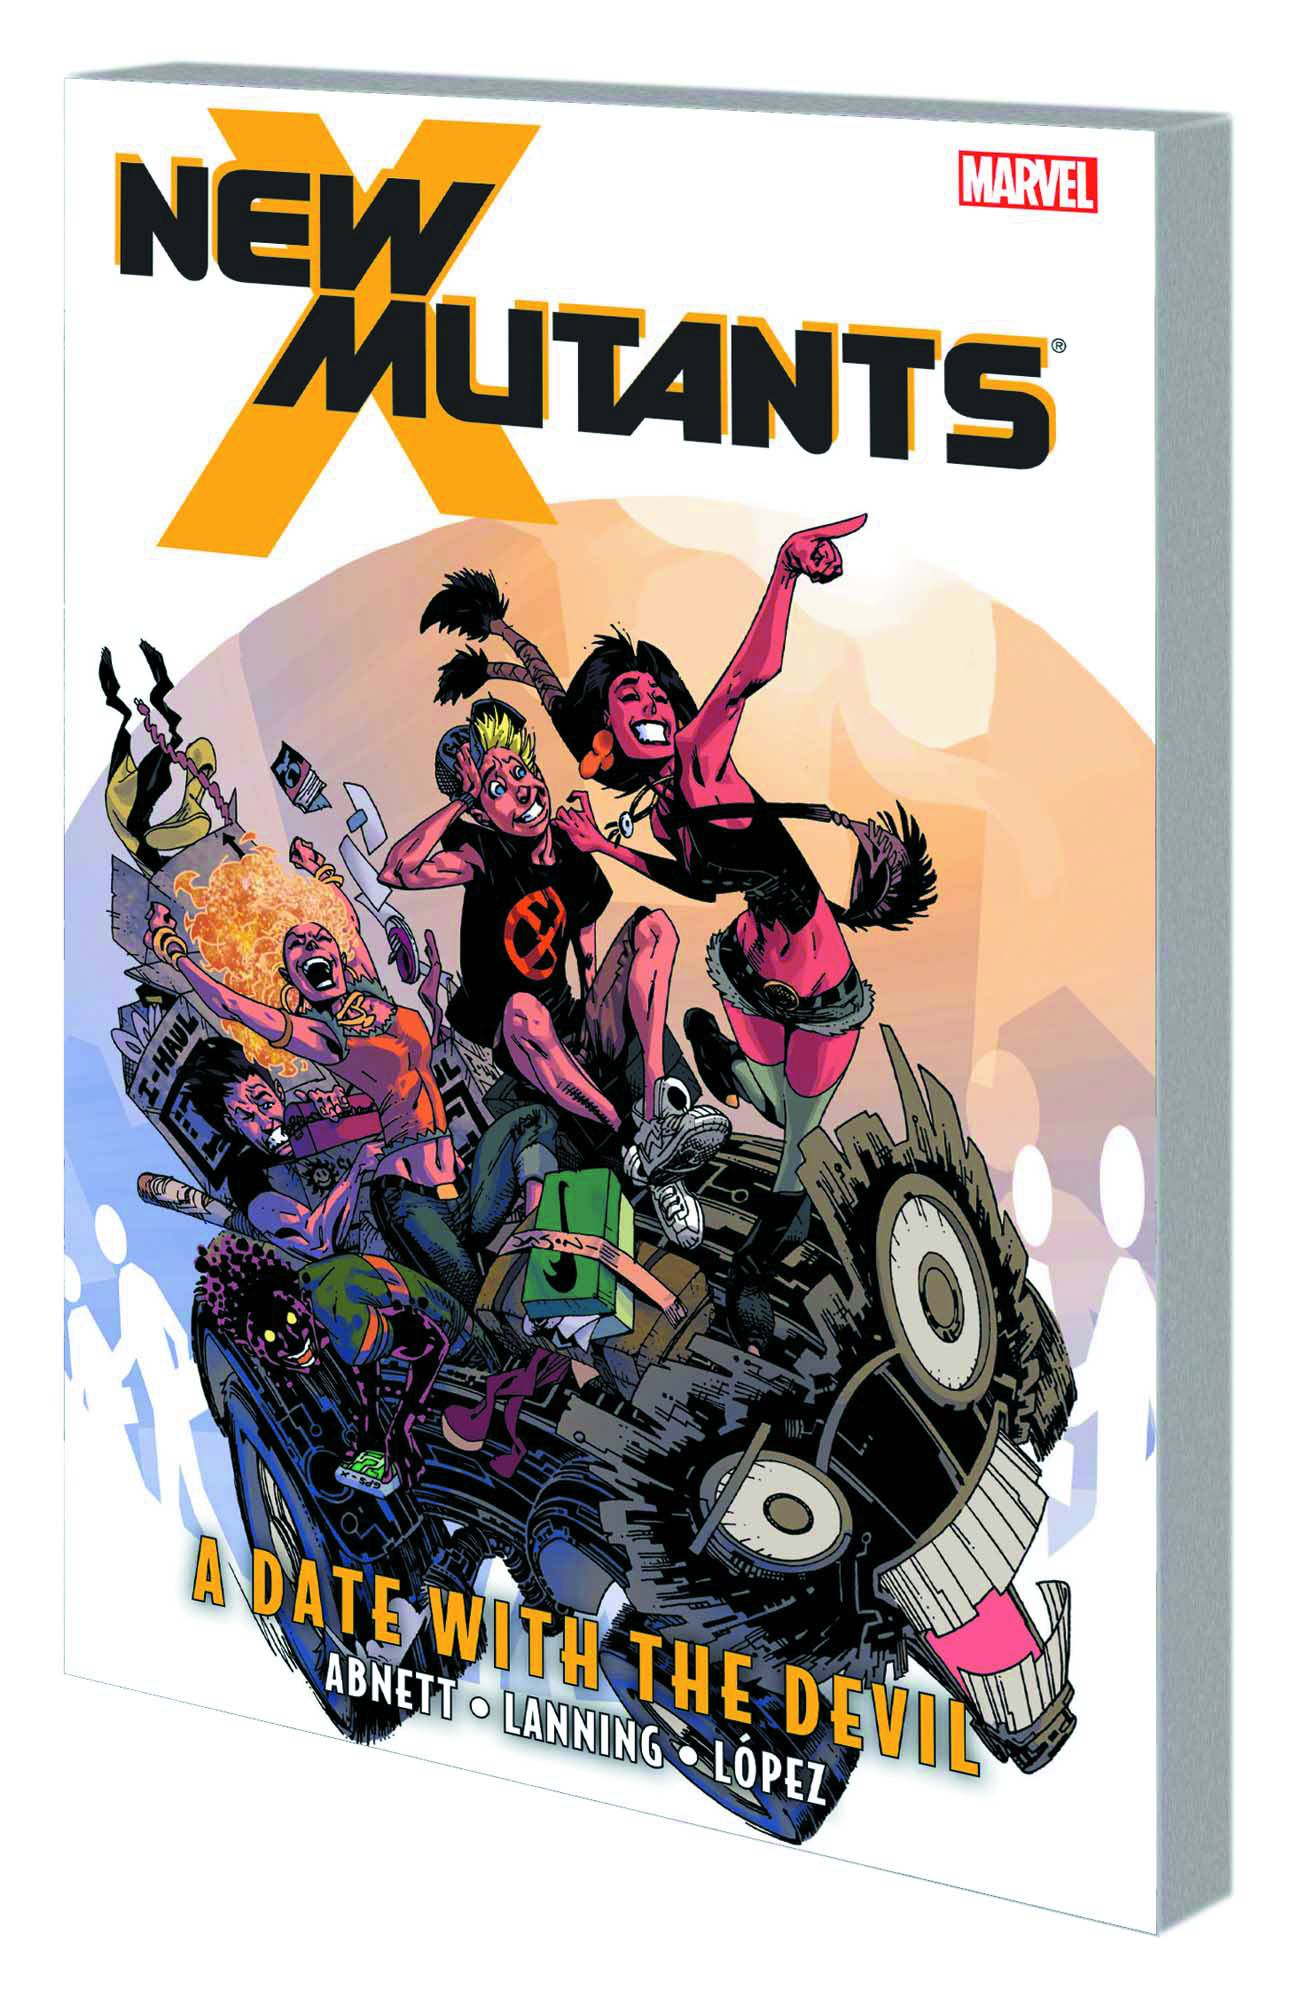 NEW MUTANTS TP VOL 05 DATE WITH DEVIL